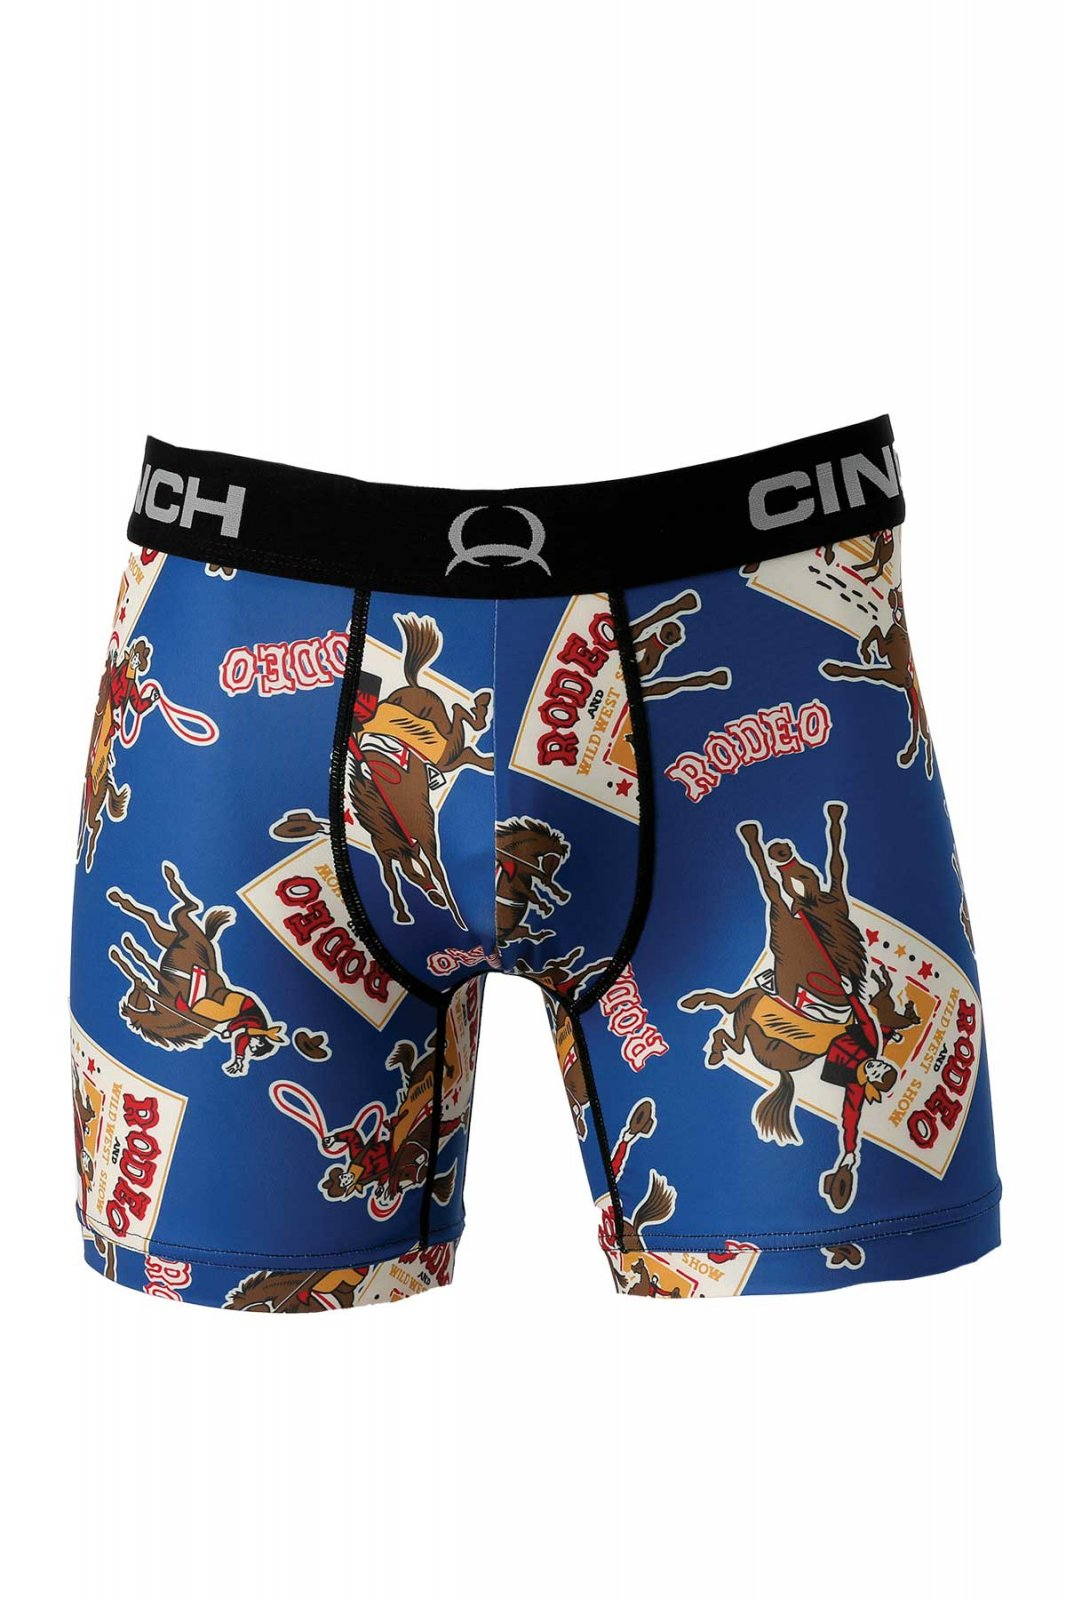 Rodeo Brief from Cinch